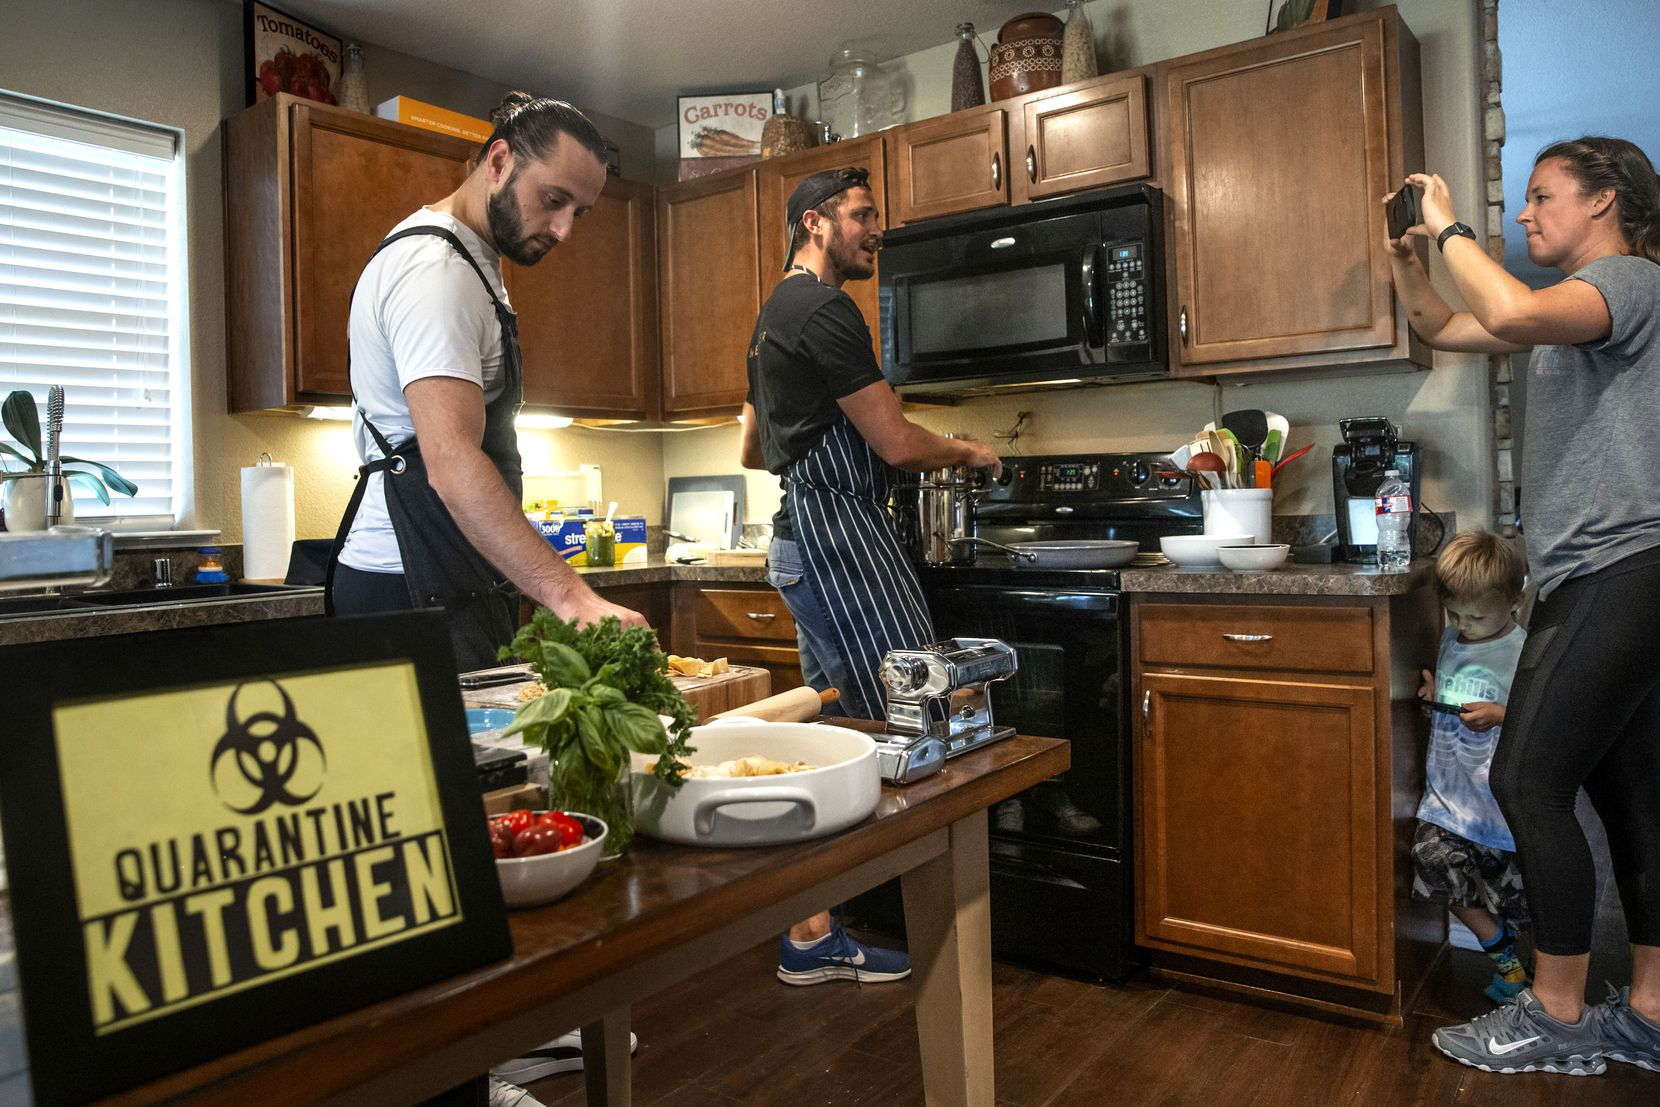 Benchmark Hospitality conference planner Christie Wilson (right) filmed chef Kyle Wilson (center) and sous-chef Kreshnik Mucllari as they prepared pasta shapes to broadcast to other company employees on Facebook Live from Wilson's home in Fort Worth in September.